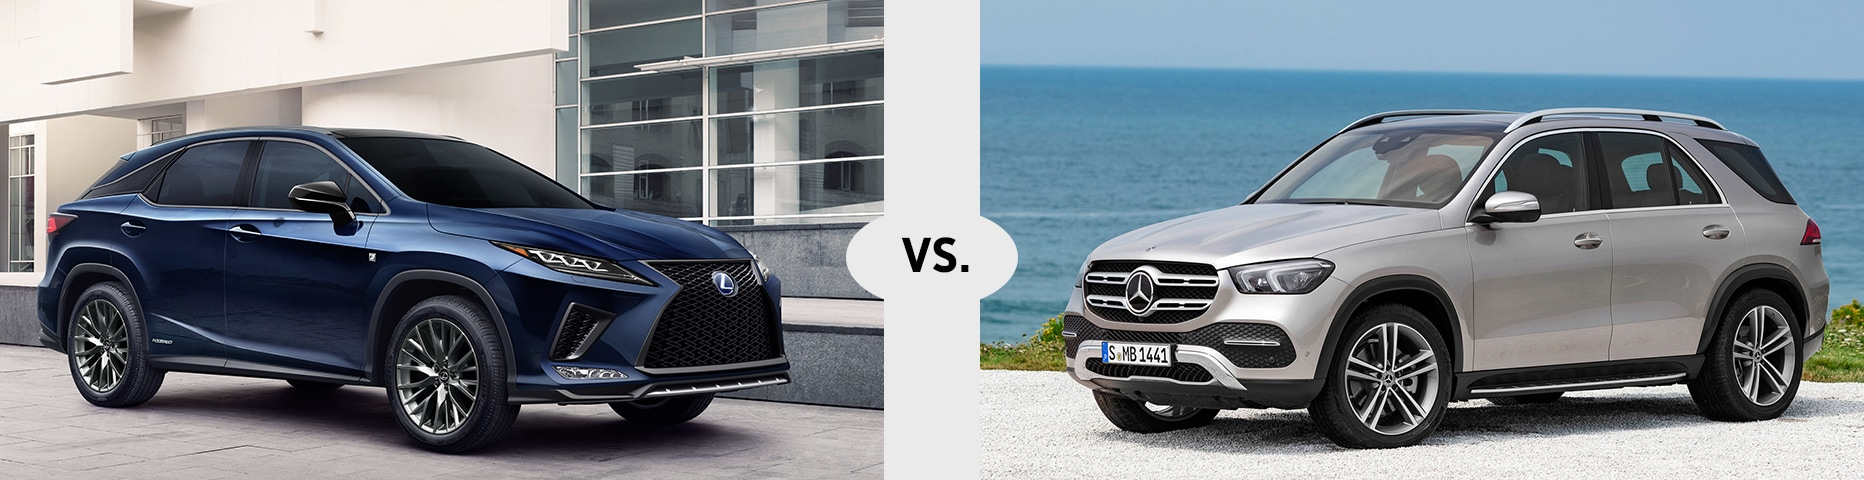 Lexus RX 350 vs. Mercedes-Benz GLE